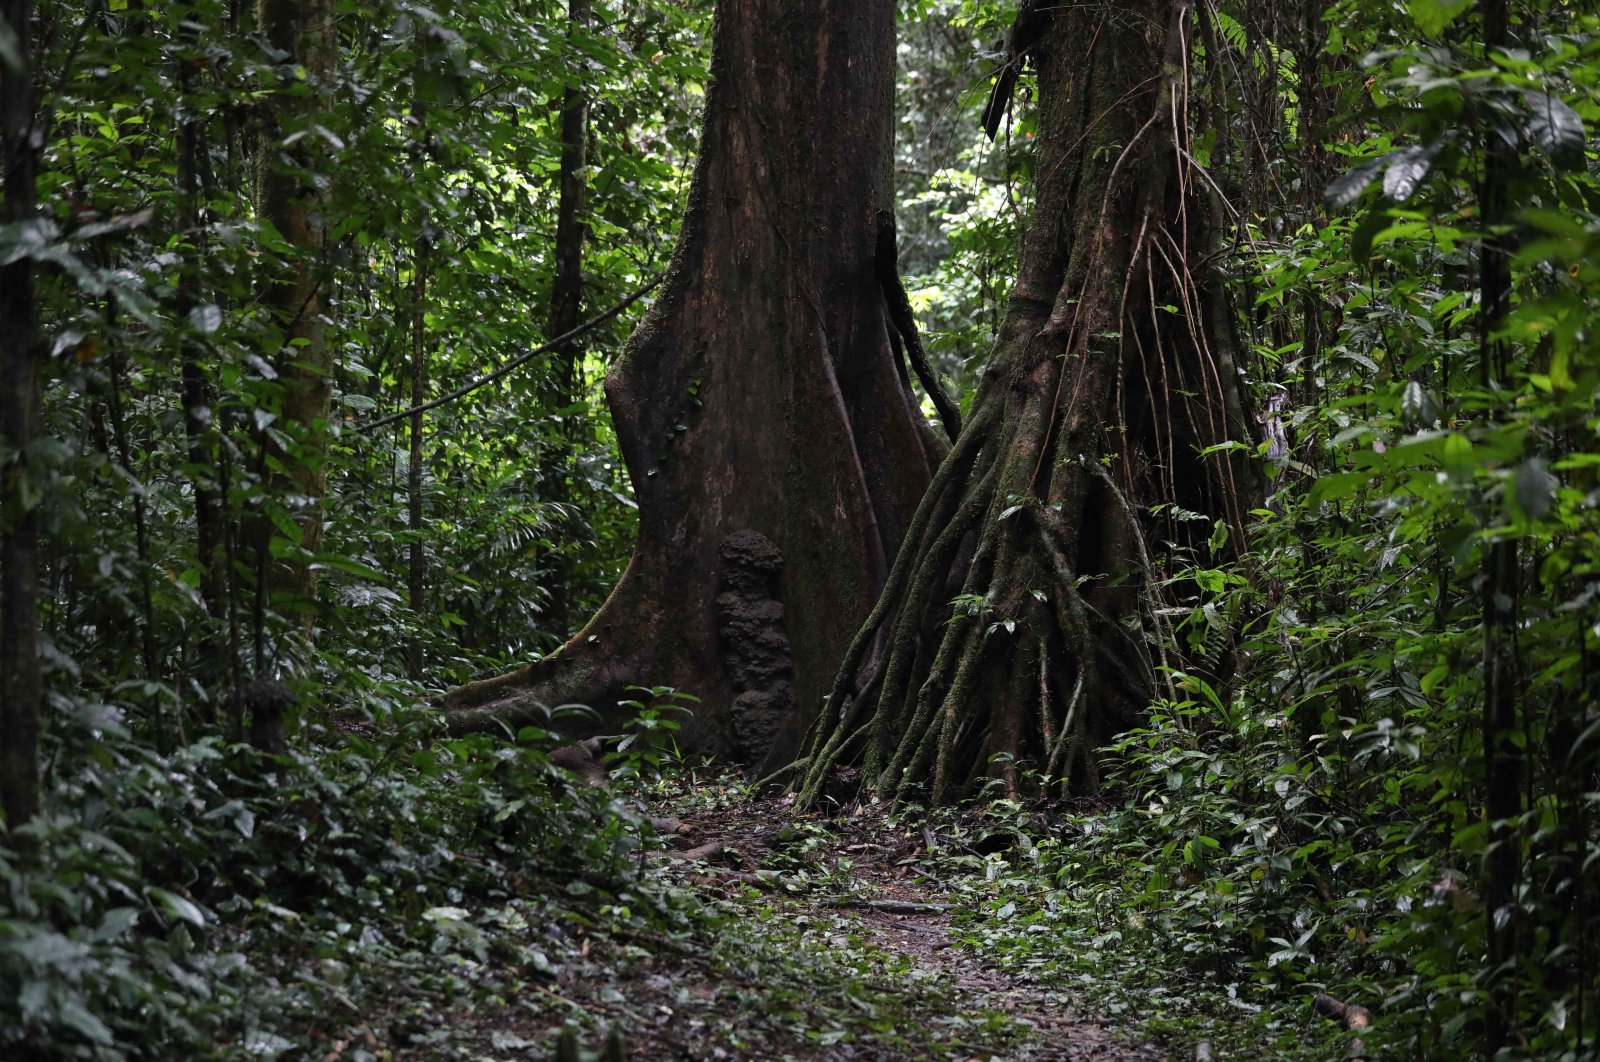 A general view of the Oban Biosphere Reserve, in Calabar, Cross River, Nigeria where UNESCO Chief Audrey Azoulay visited during a tour of the Reserve on Sept. 12, 2021. (AFP Photo)